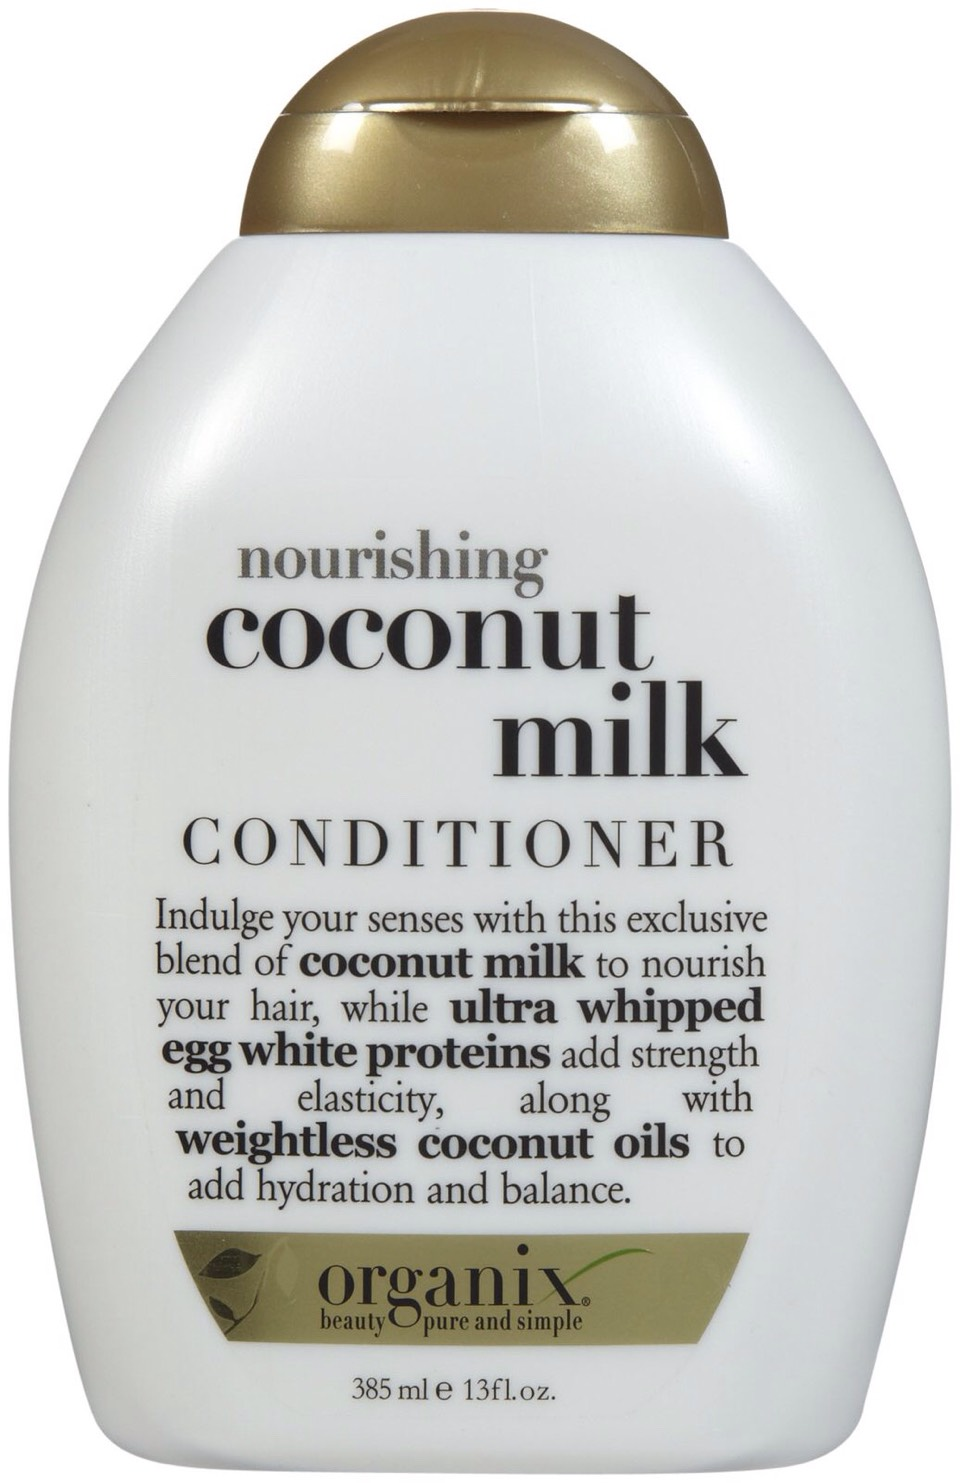 Then always apply a conditioner after shampooing and rinsing